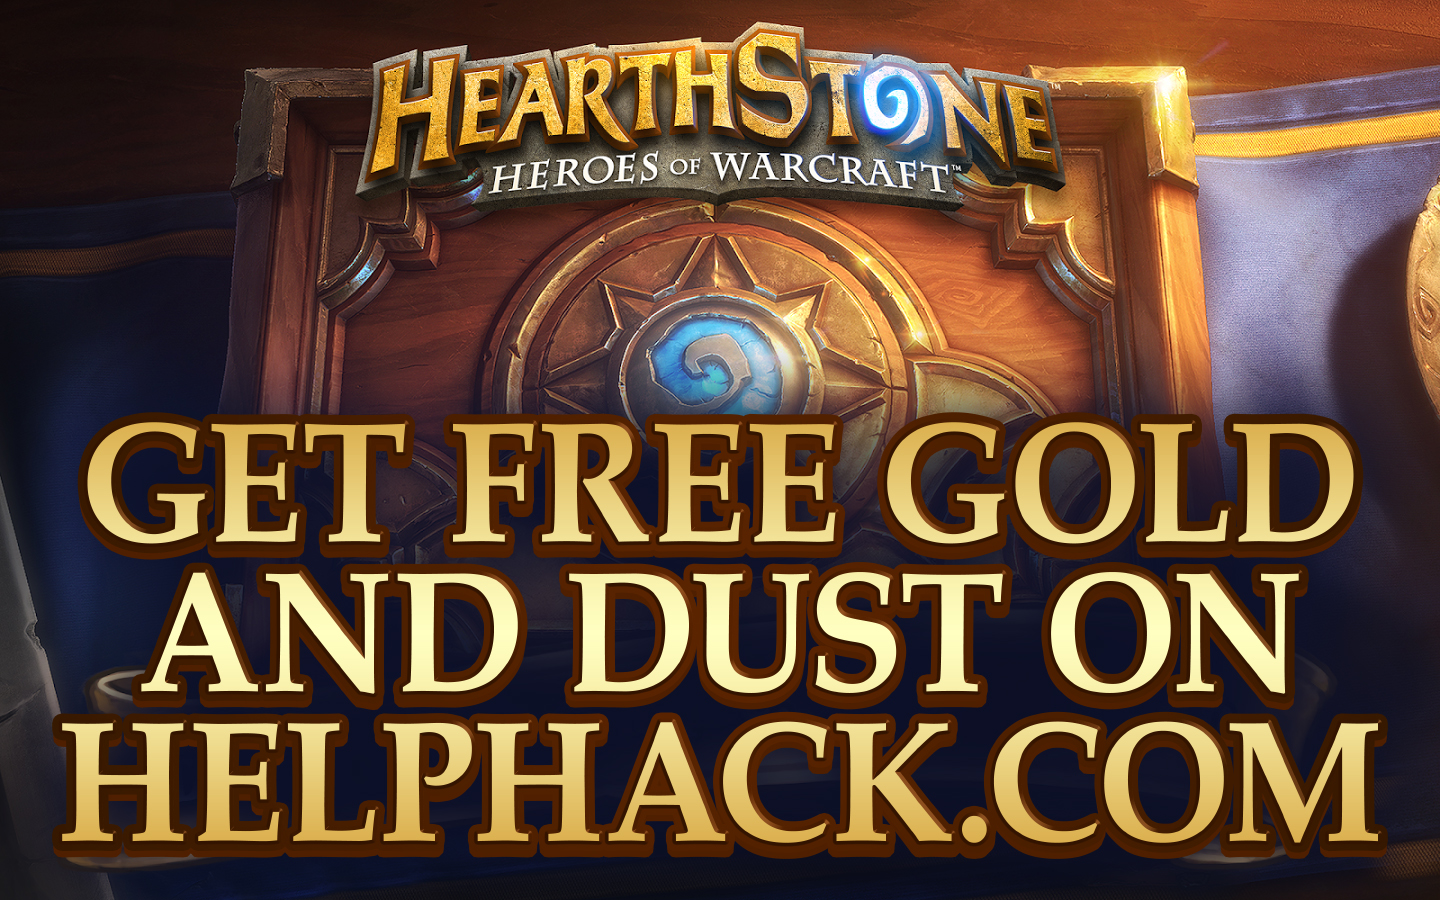 Image currently unavailable. Go to www.generator.helphack.com and choose Hearthstone image, you will be redirect to Hearthstone Generator site.